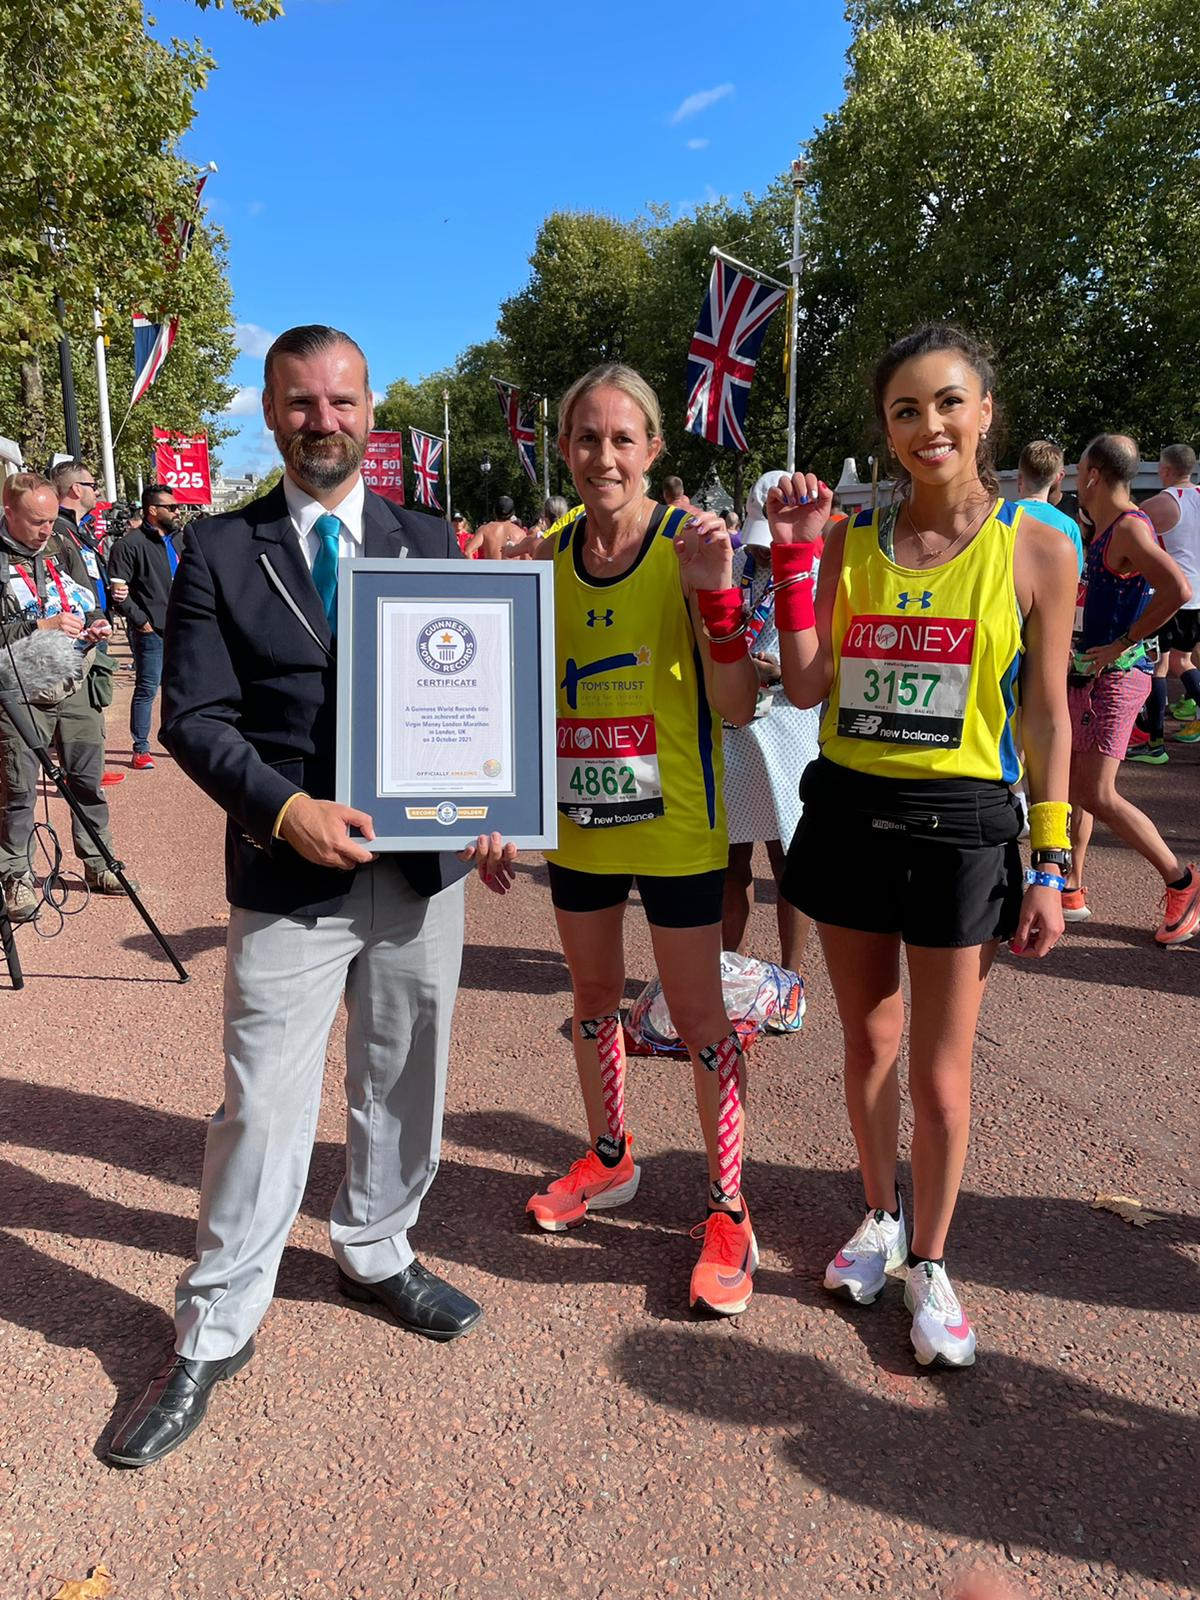 Kerry and Troi being presented with their Guinness World Record certificate